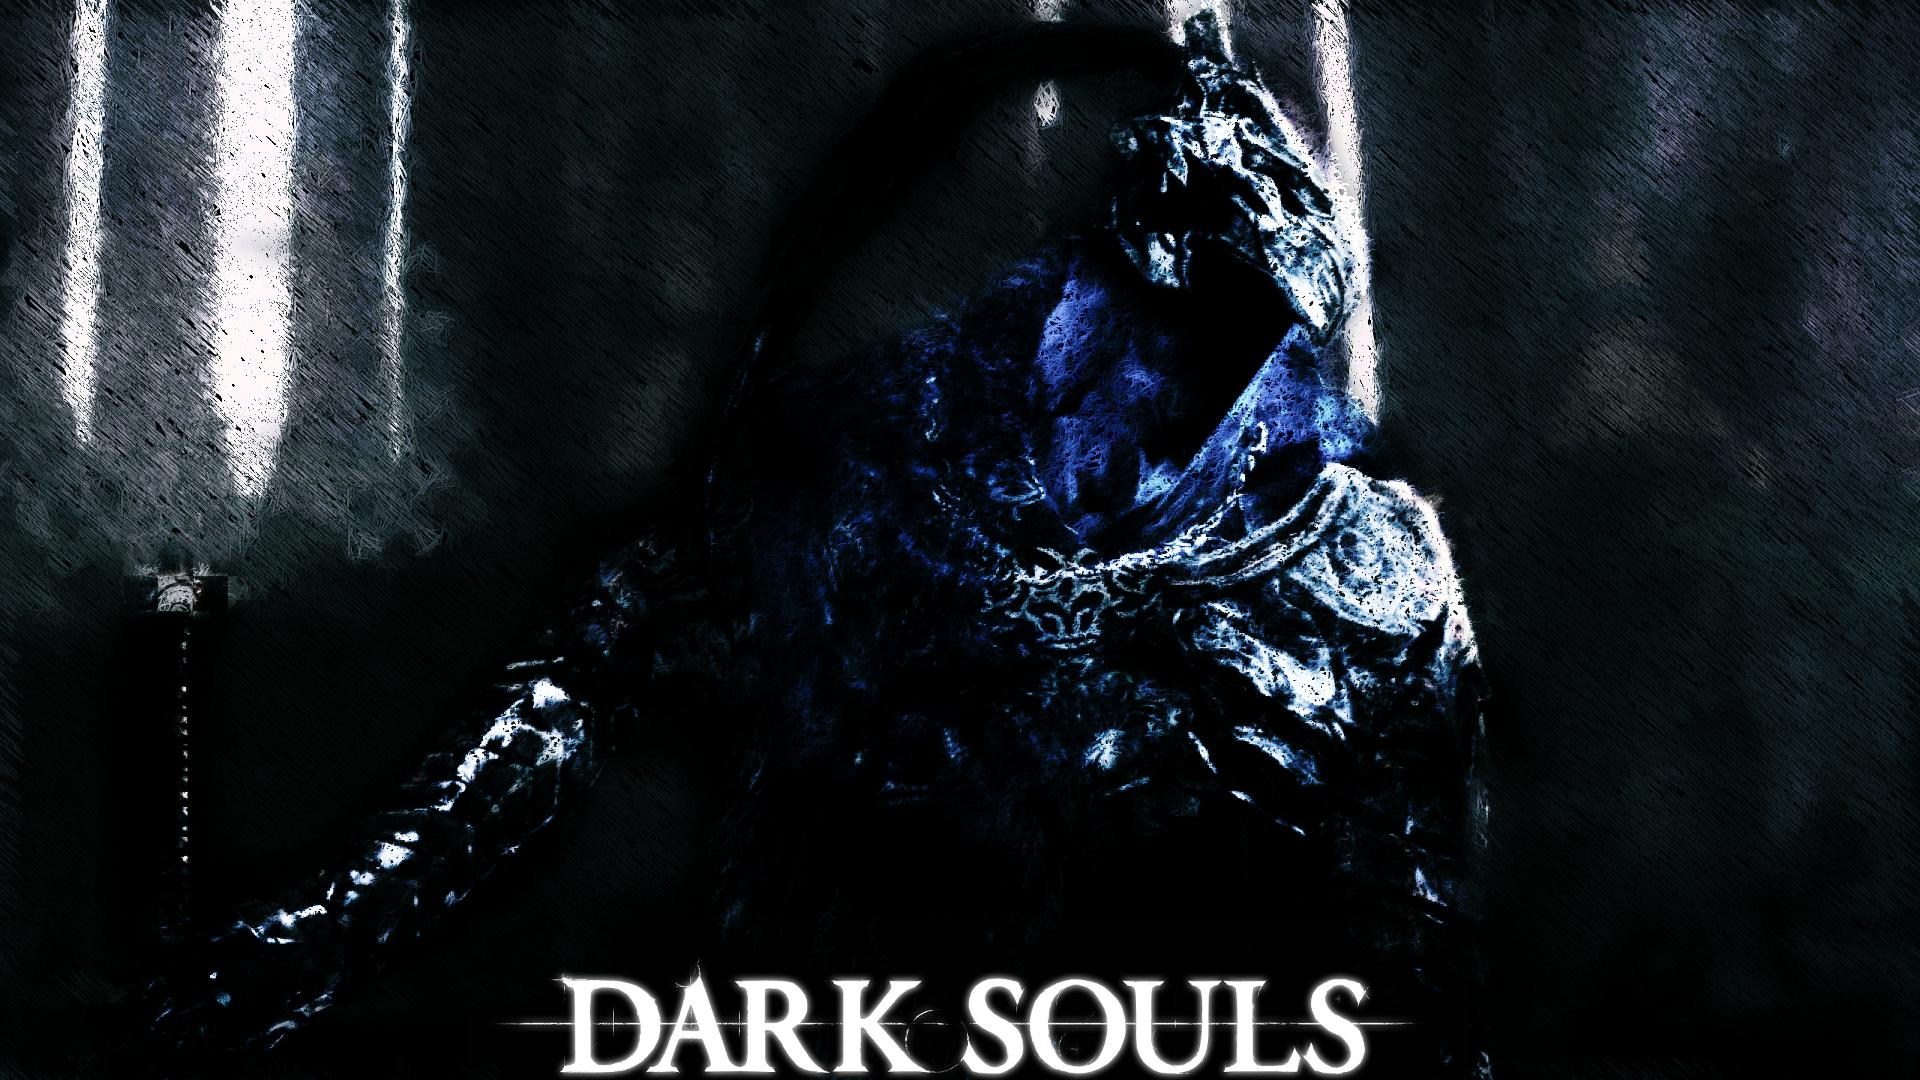 Wallpaper 2 Image Dark Souls Fan Group Mod Db